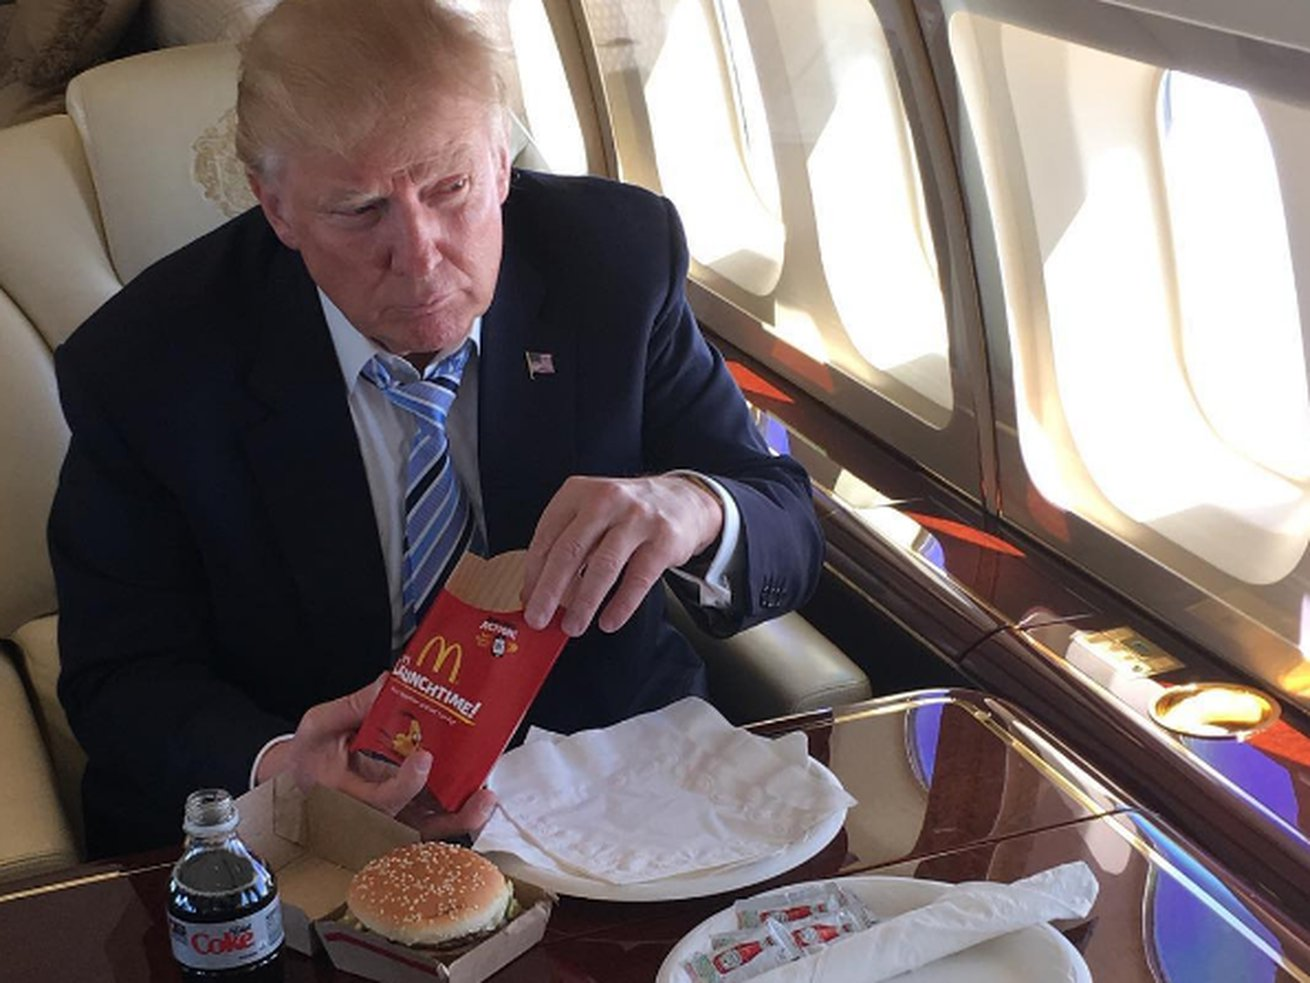 Donald Trump 'eats cheeseburgers in bed for dinner while watching three TVs'